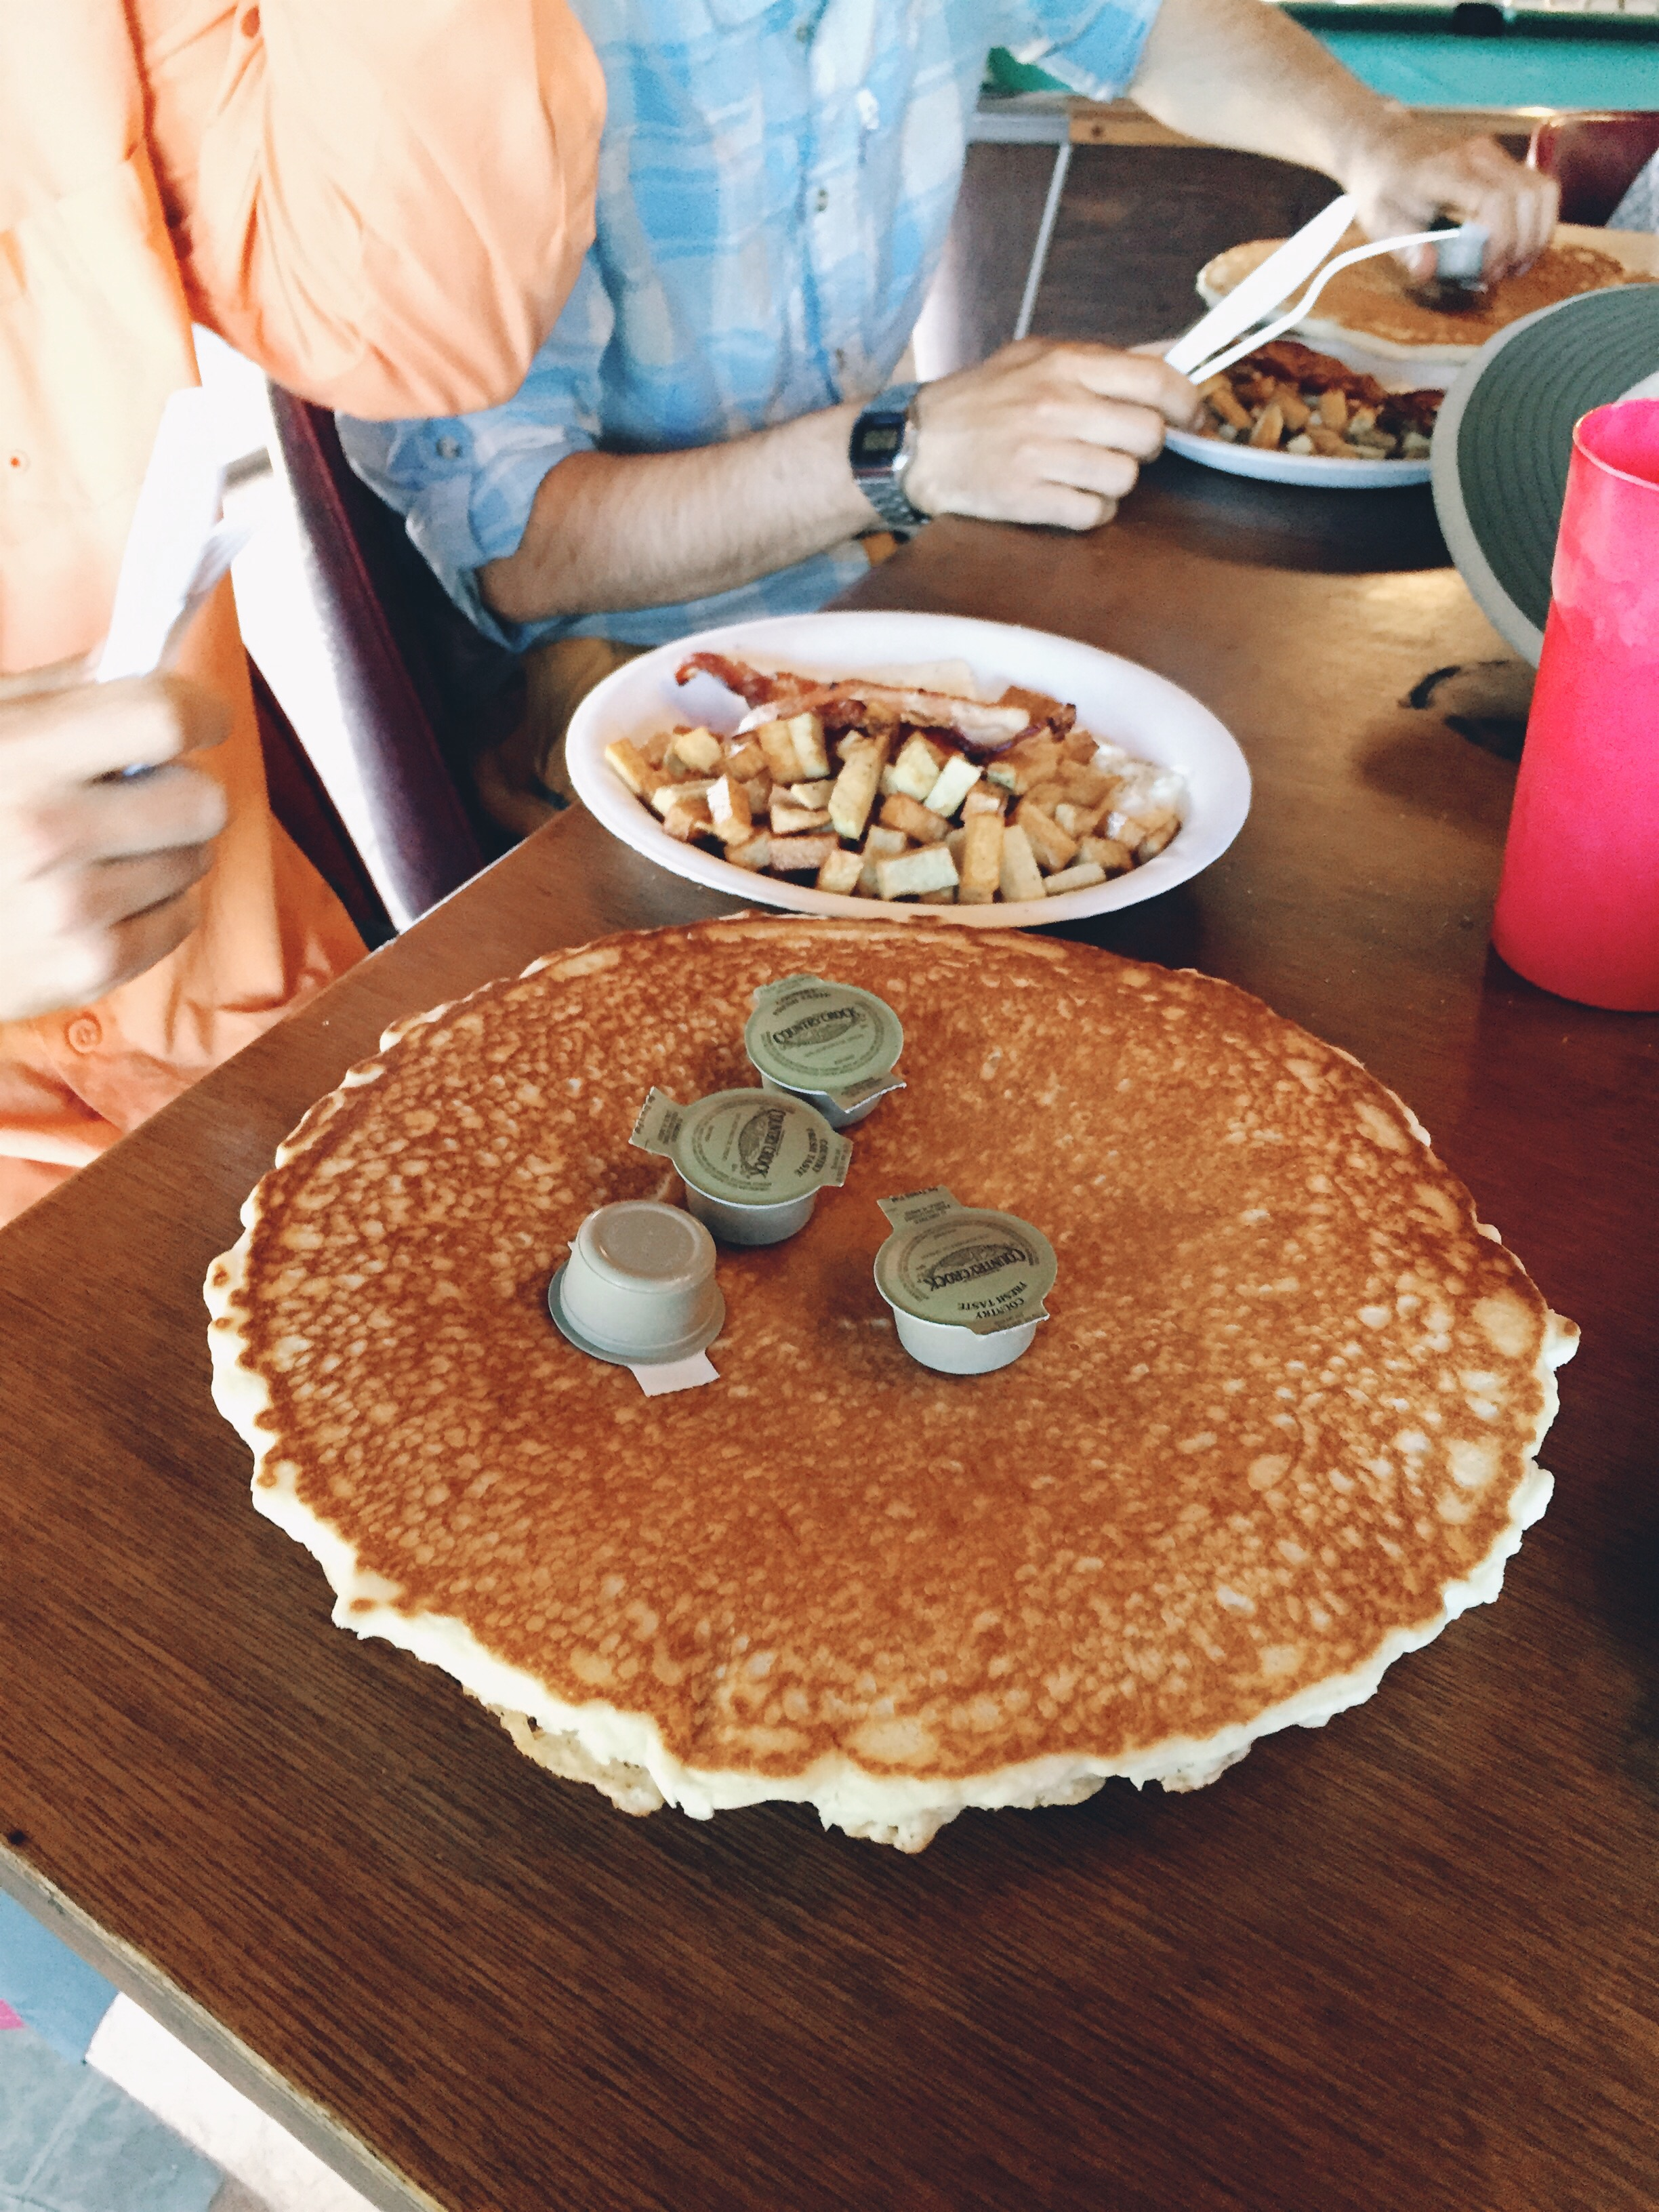 Pancake bigger than your face at Grumpy's in KM.